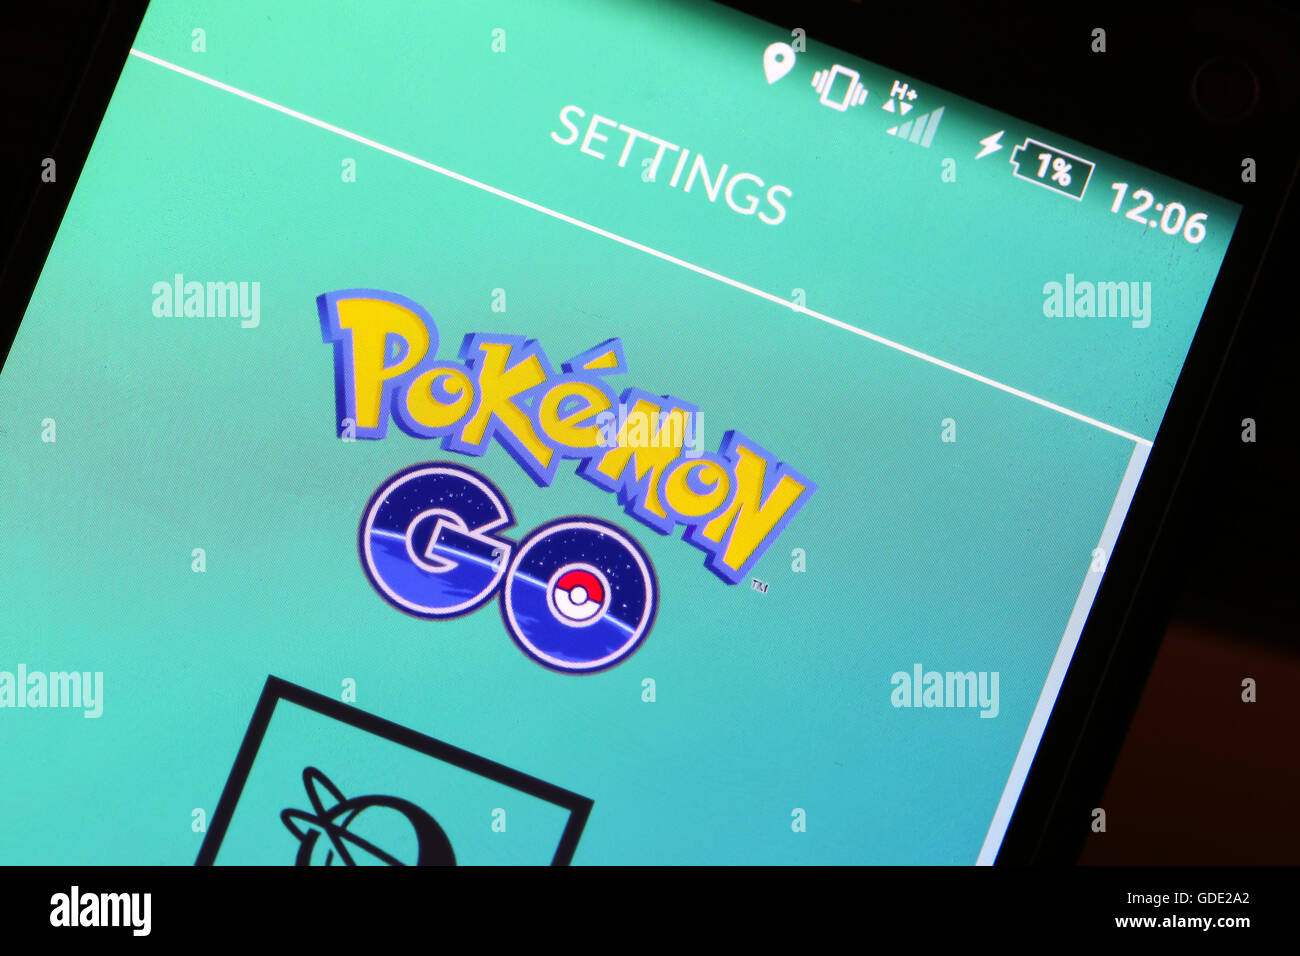 Velika Gorica, Croatia. 15th July, 2016. : Macro close up image of Pokemon Go game app logo on the smartphone. Pokemon Go is a free-to-play augmented reality mobile game developed by Nintendo. Credit:  PhotoJa/Alamy Live News Stock Photo